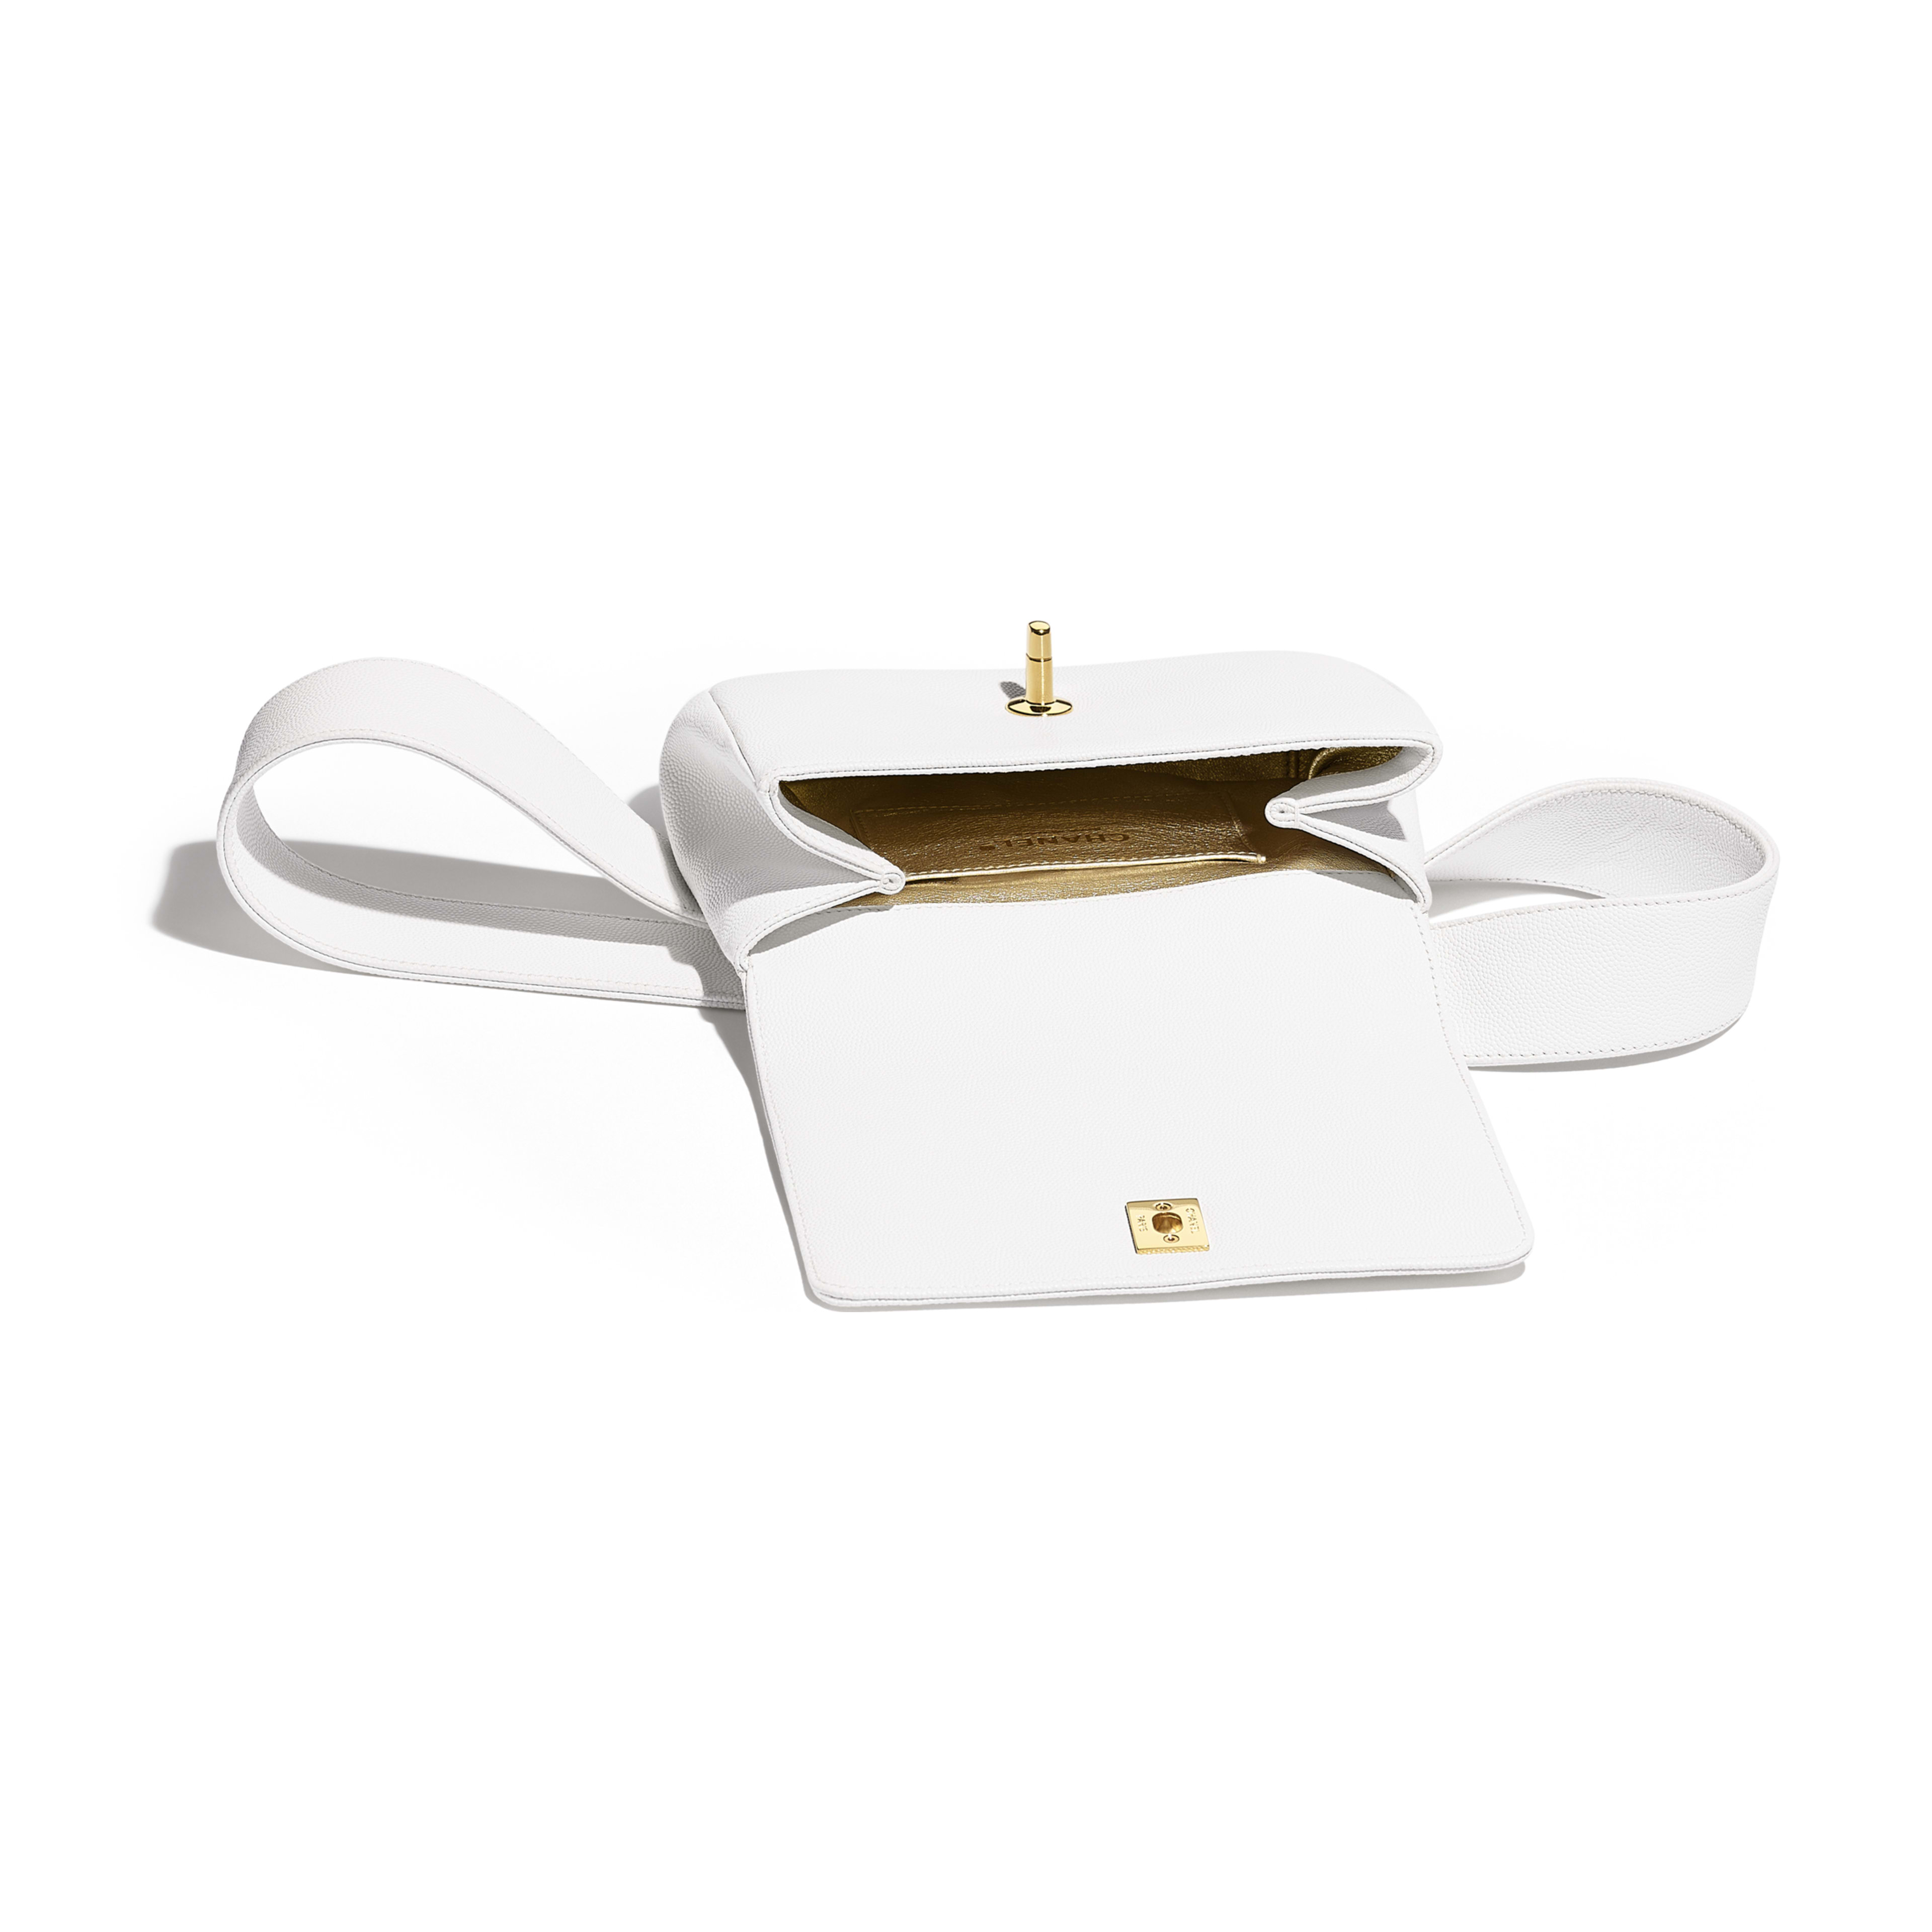 Waist Bag - White - Embroidered Grained Calfskin & Gold-Tone Metal - Other view - see full sized version